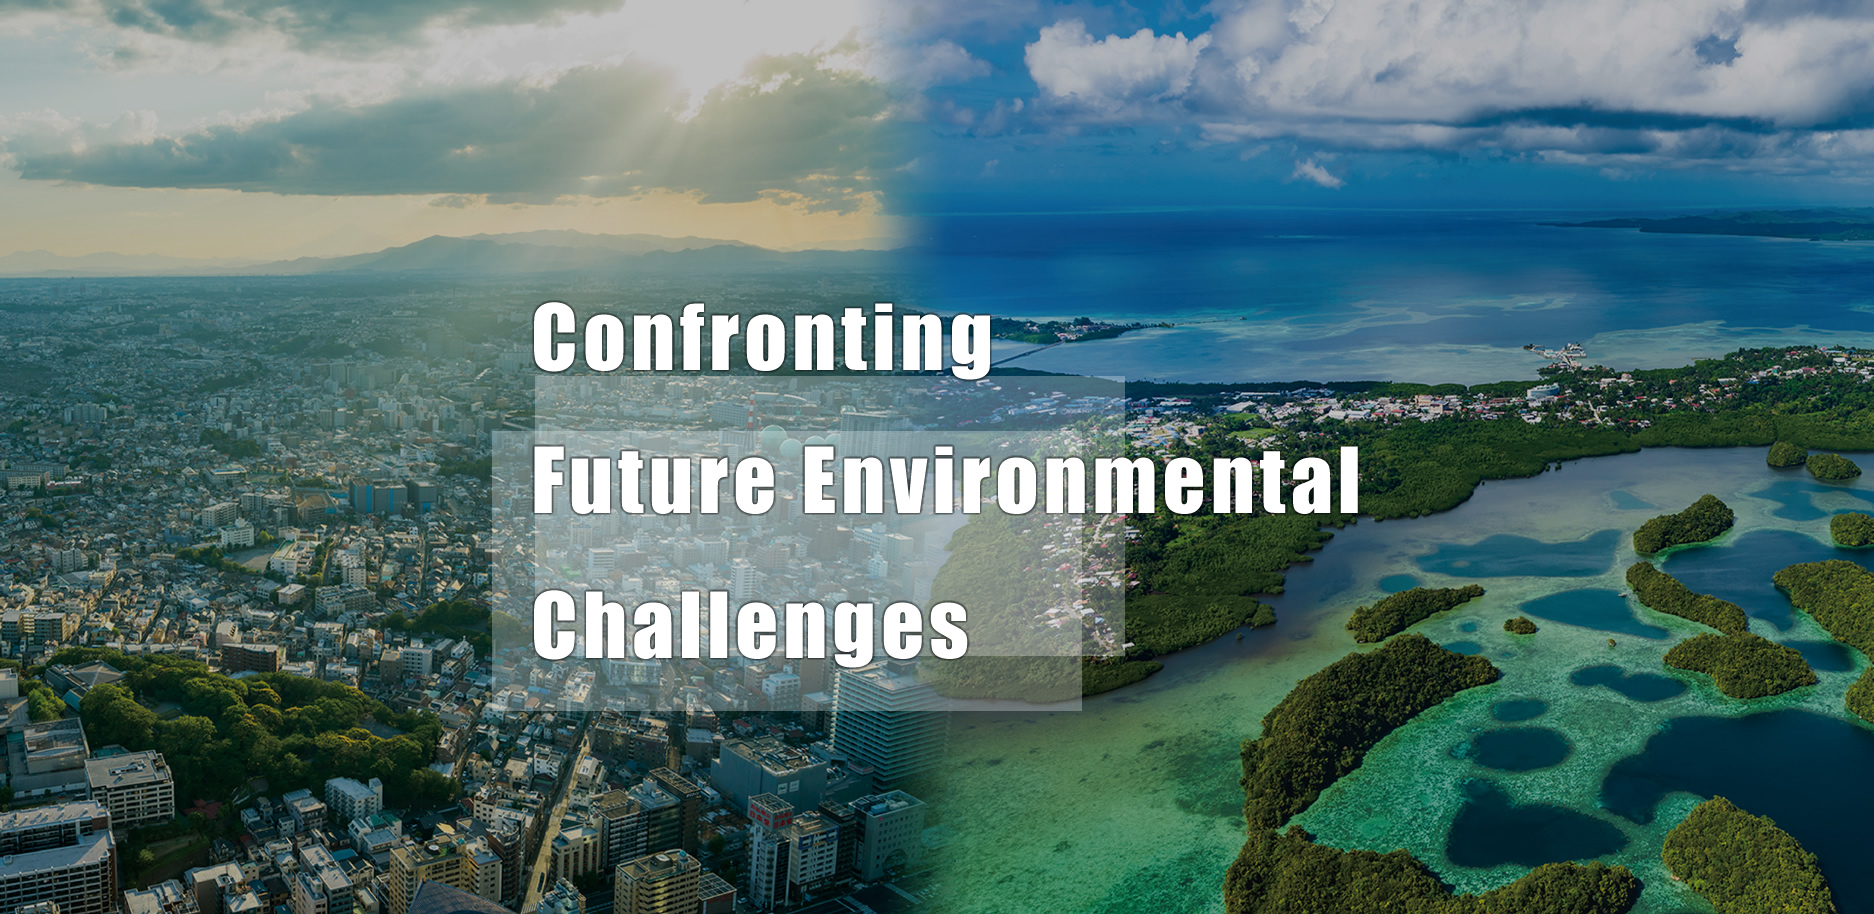 Confronting Future Environmental Challenges